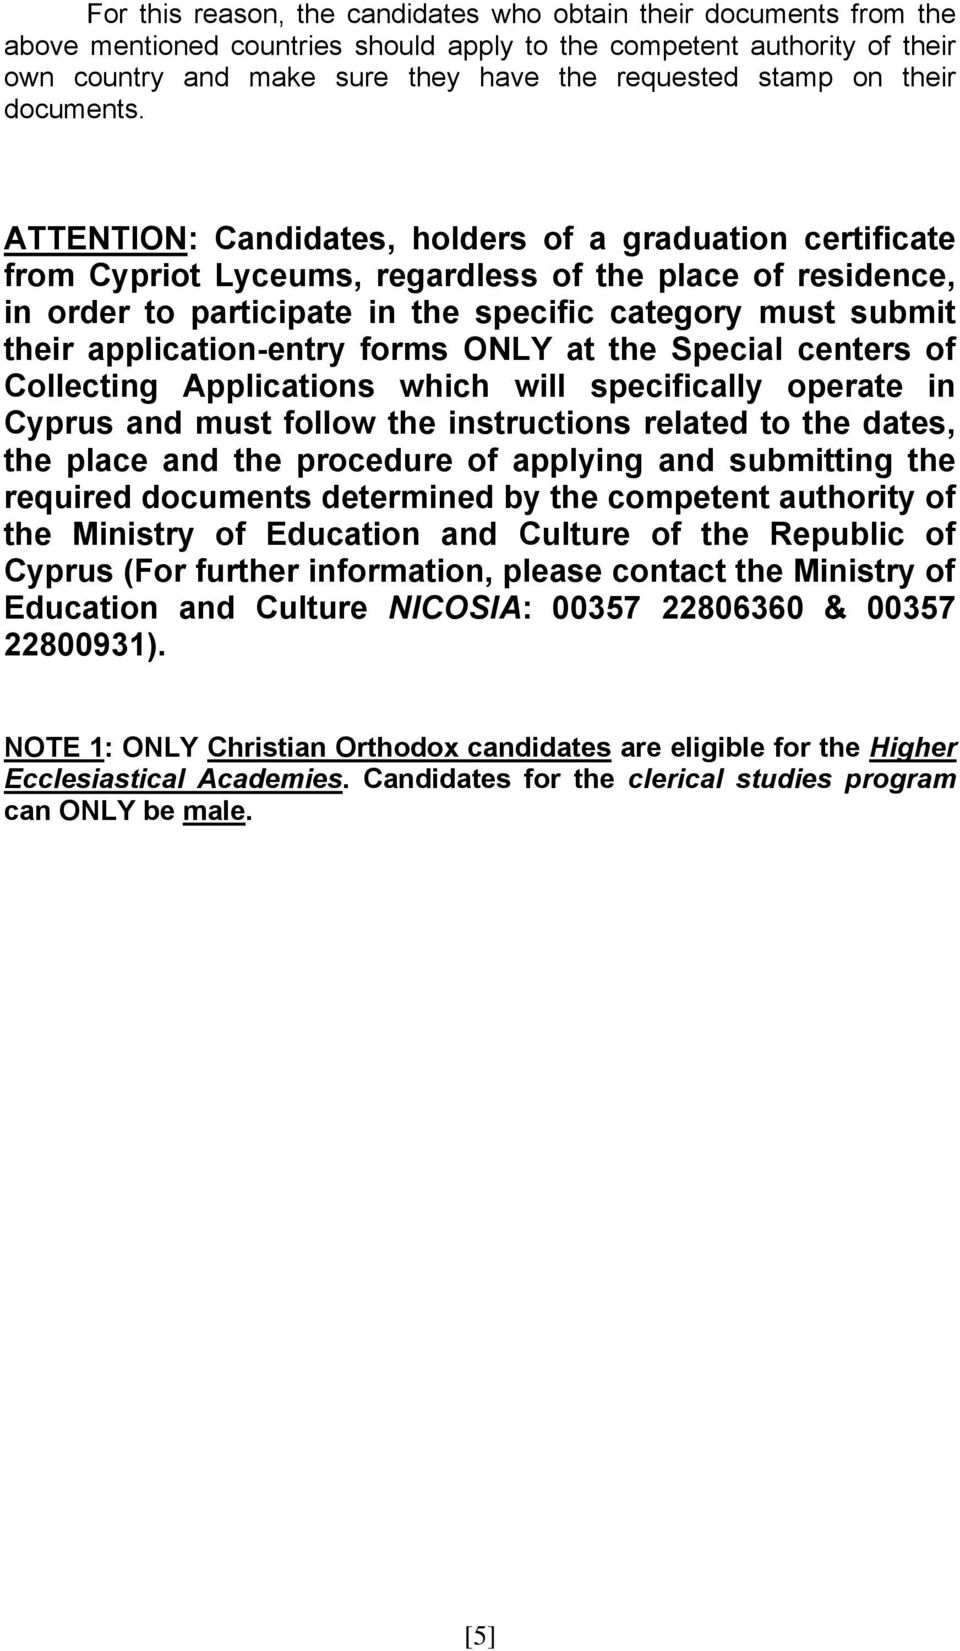 ATTENTION: Candidates, holders of a graduation certificate from Cypriot Lyceums, regardless of the place of residence, in order to participate in the specific category must submit their